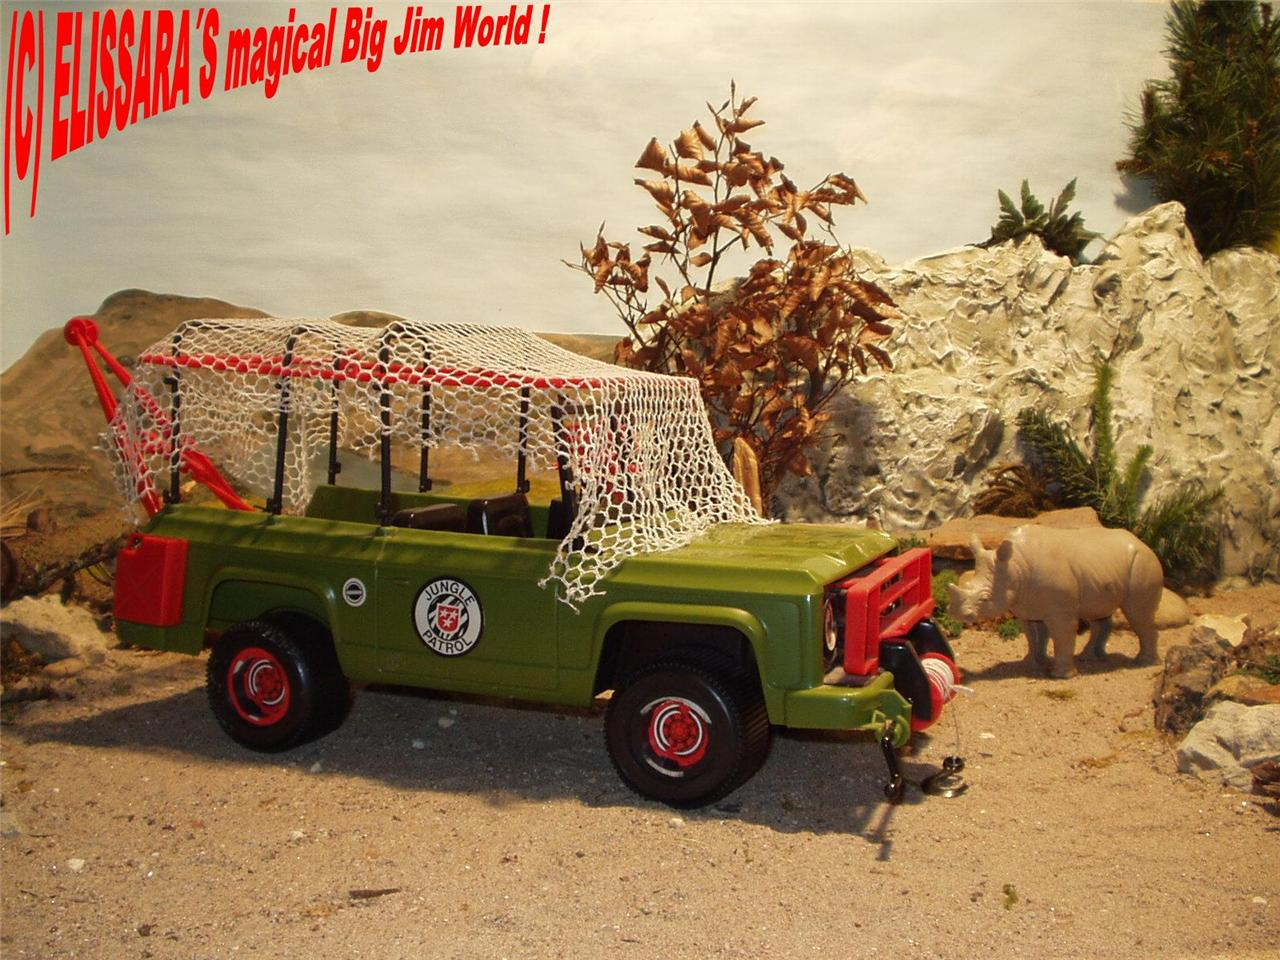 big jim safari jeep jungle truck rhino baby etc ebay. Black Bedroom Furniture Sets. Home Design Ideas